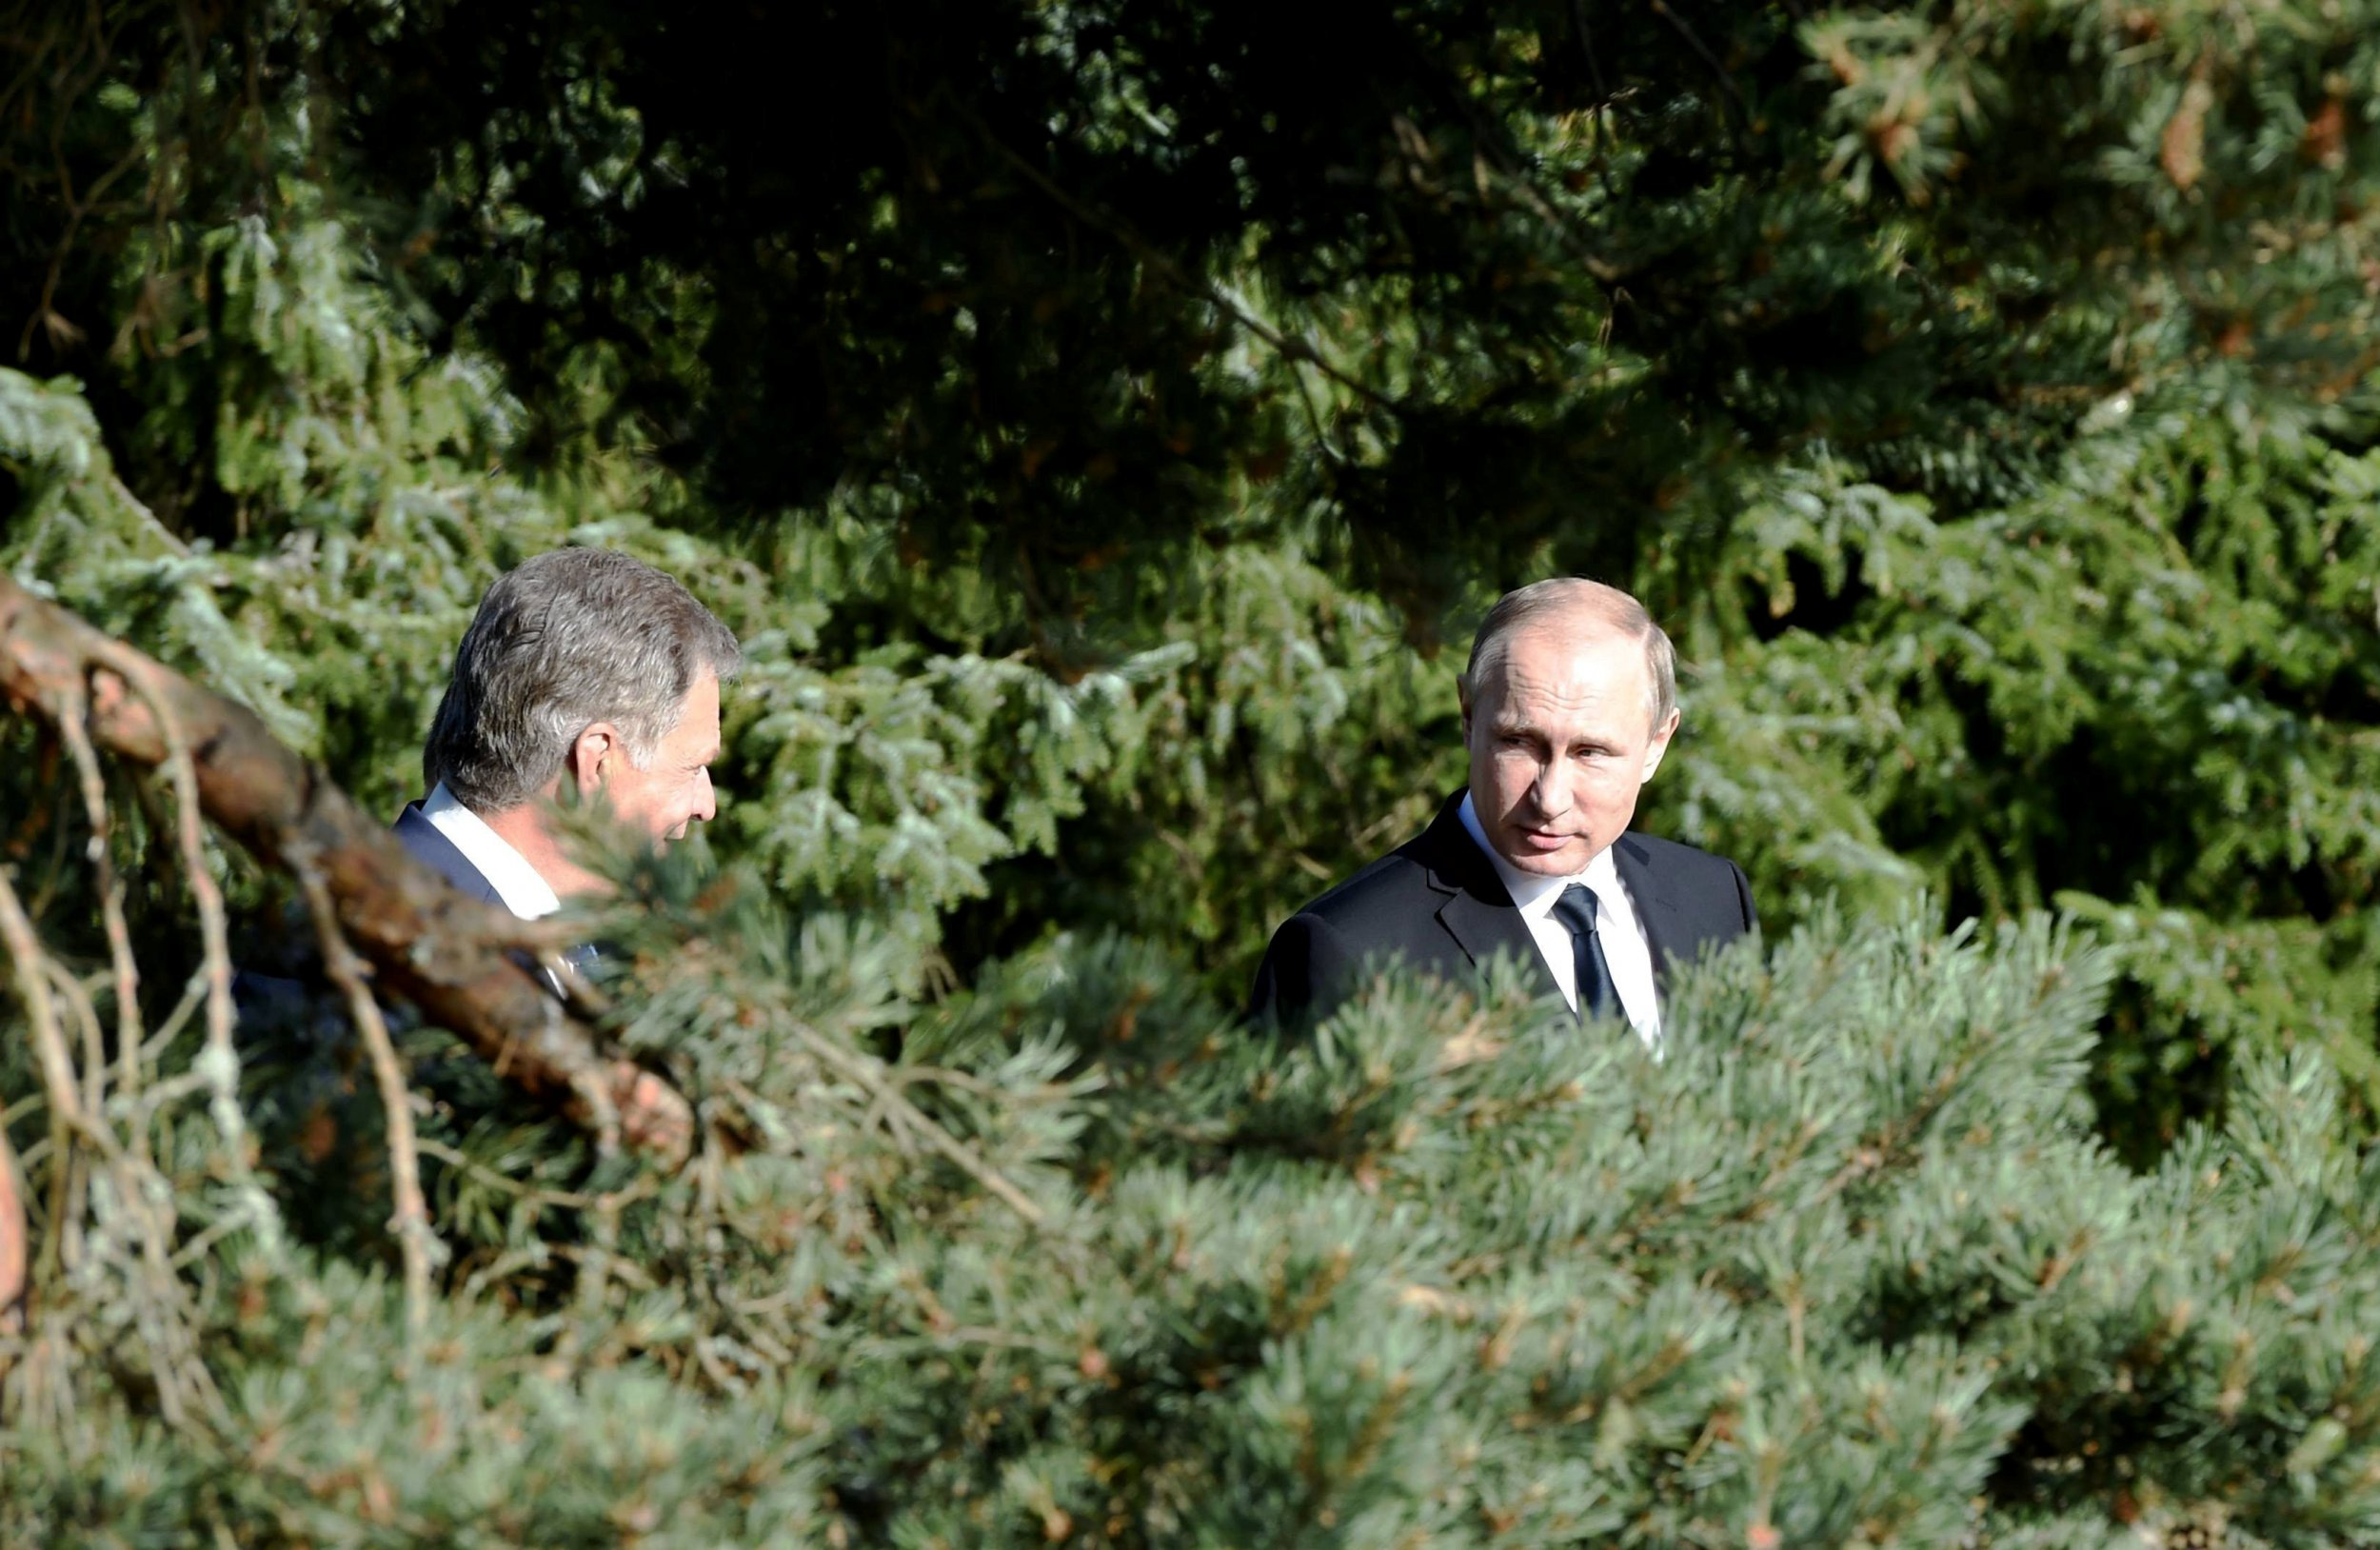 07_11_Putin_Neighbors_01